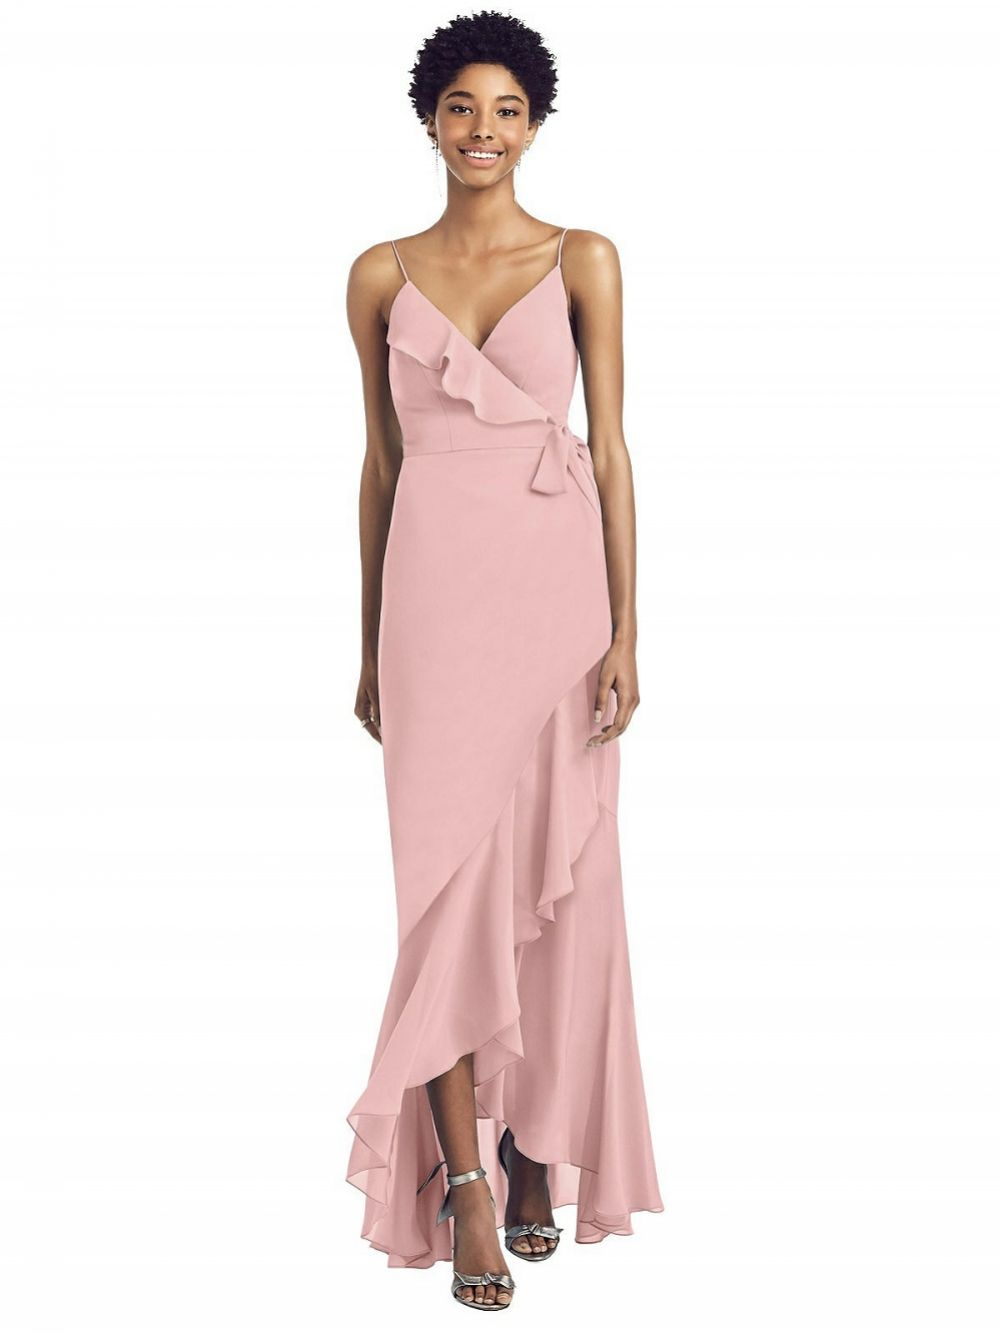 Social Ruffled High Low Faux Wrap Dress with Spaghetti Straps 8198